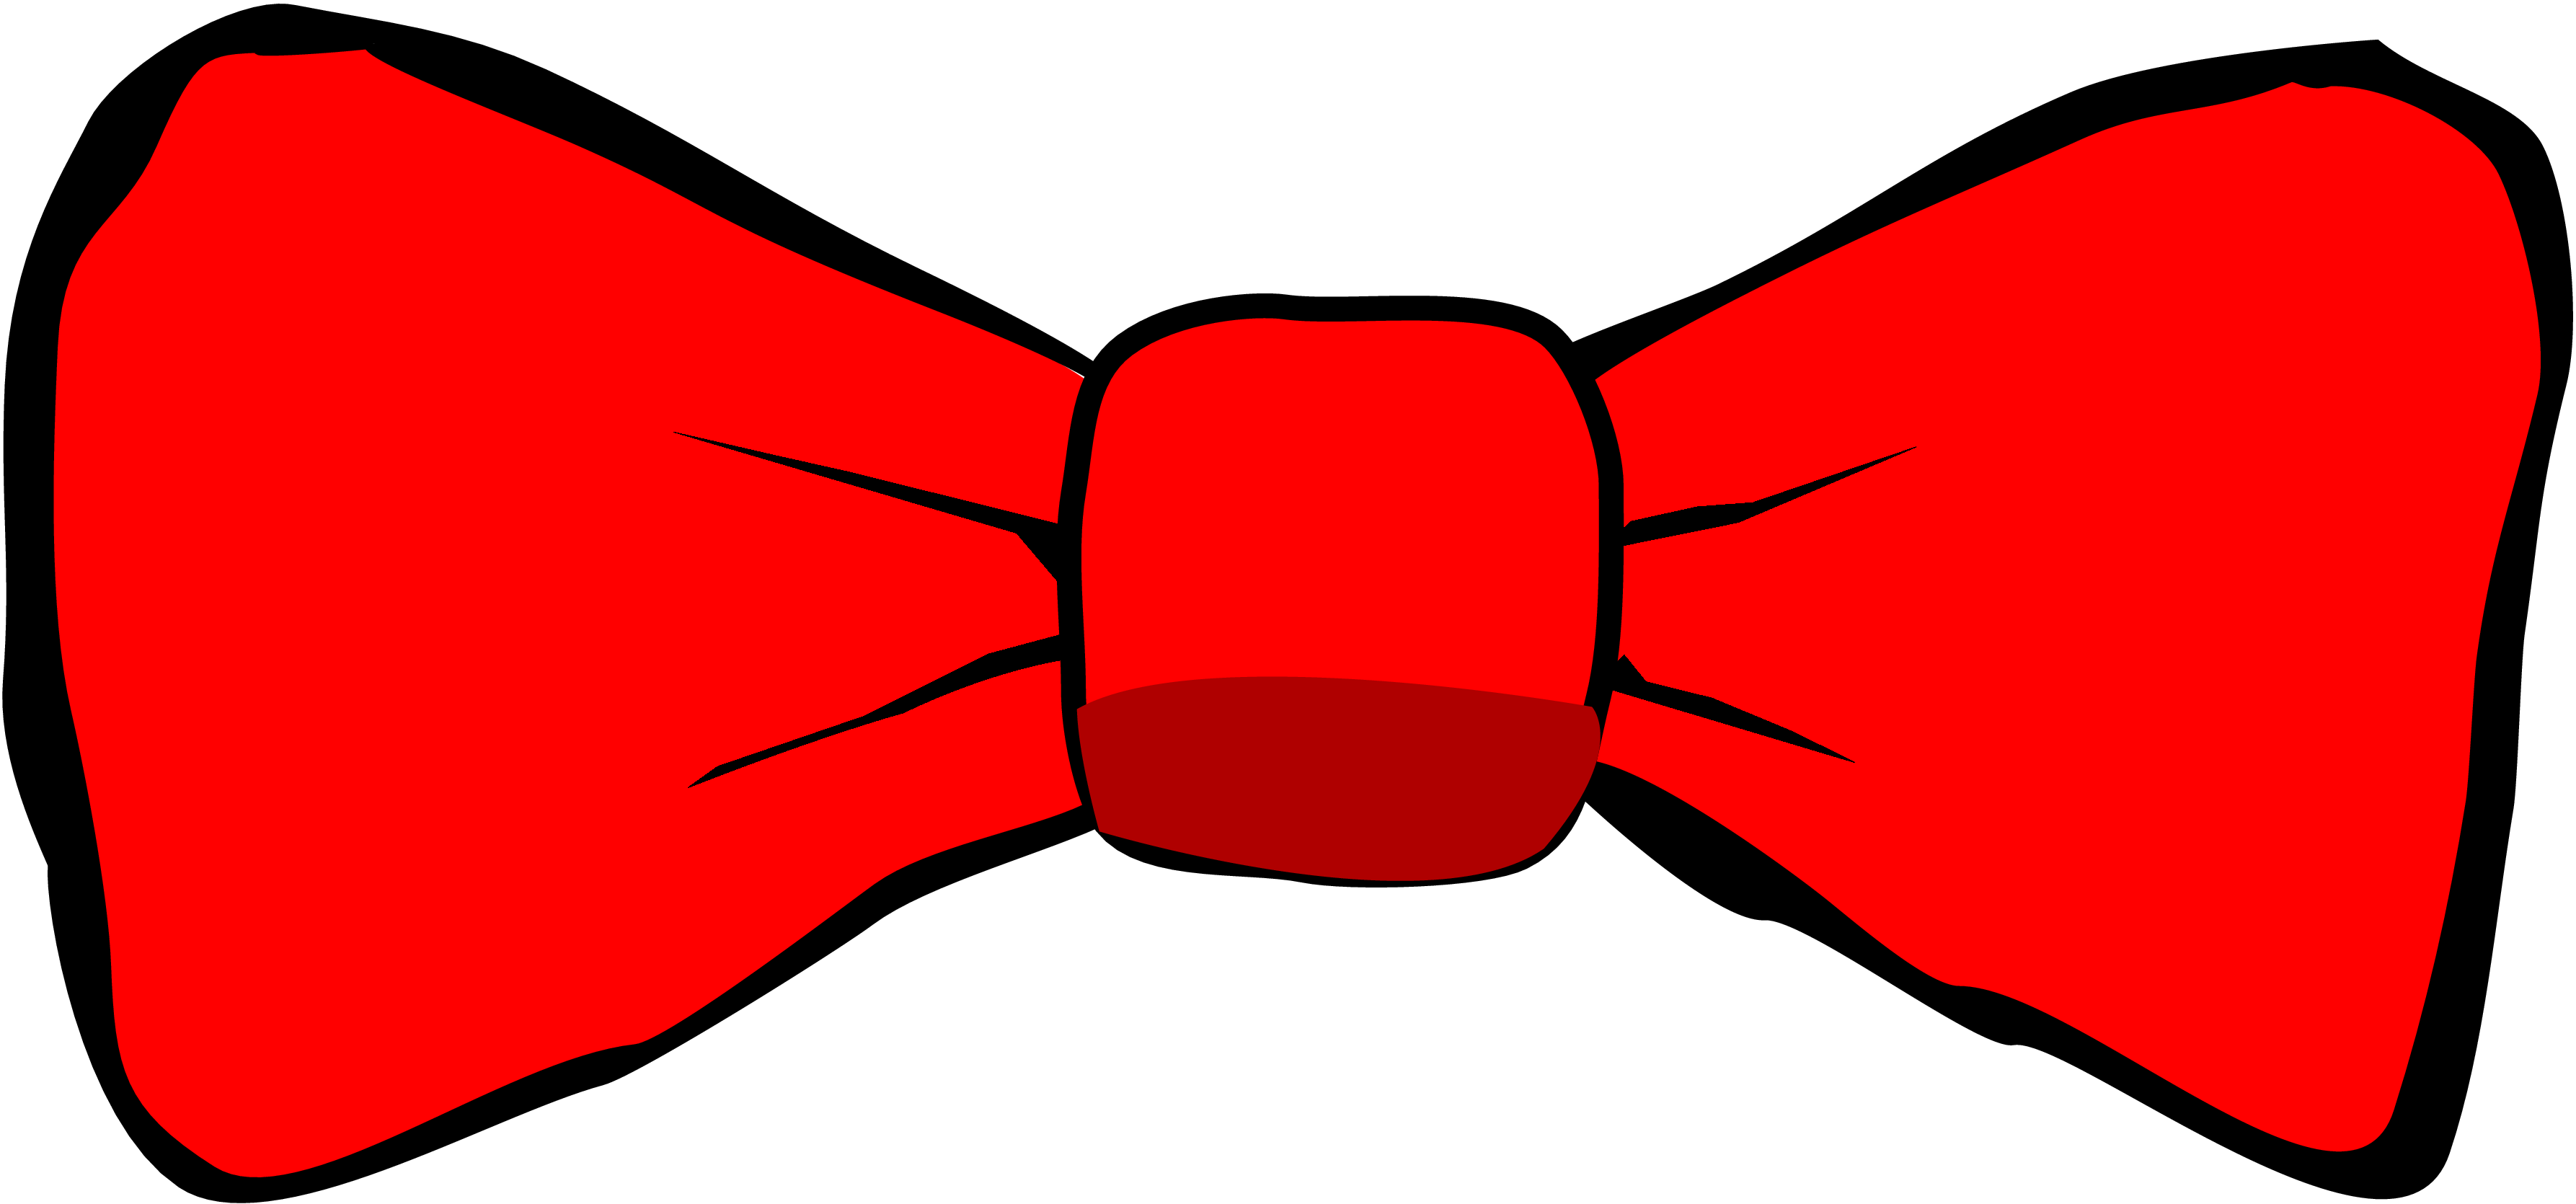 clip art download Best photos of animated. Bowtie clipart bow tie.